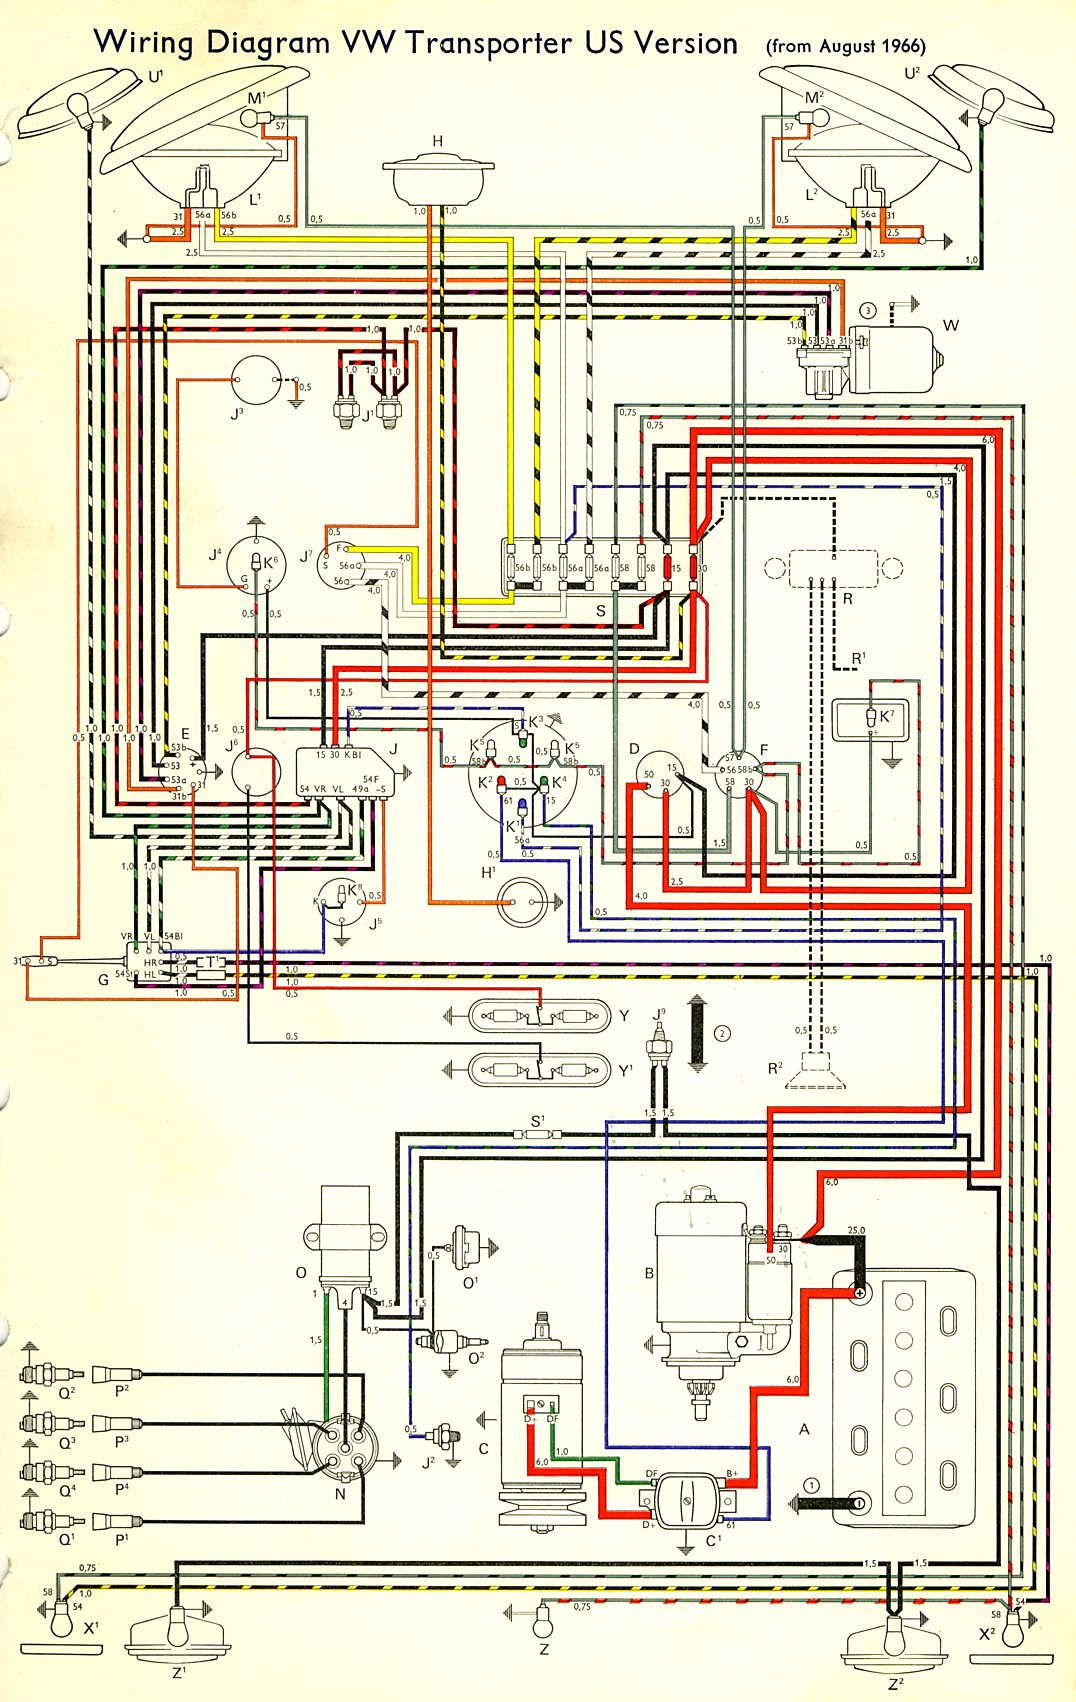 Type 2 Wiring Diagrams Generator Circuit Diagram Electronic Schematics